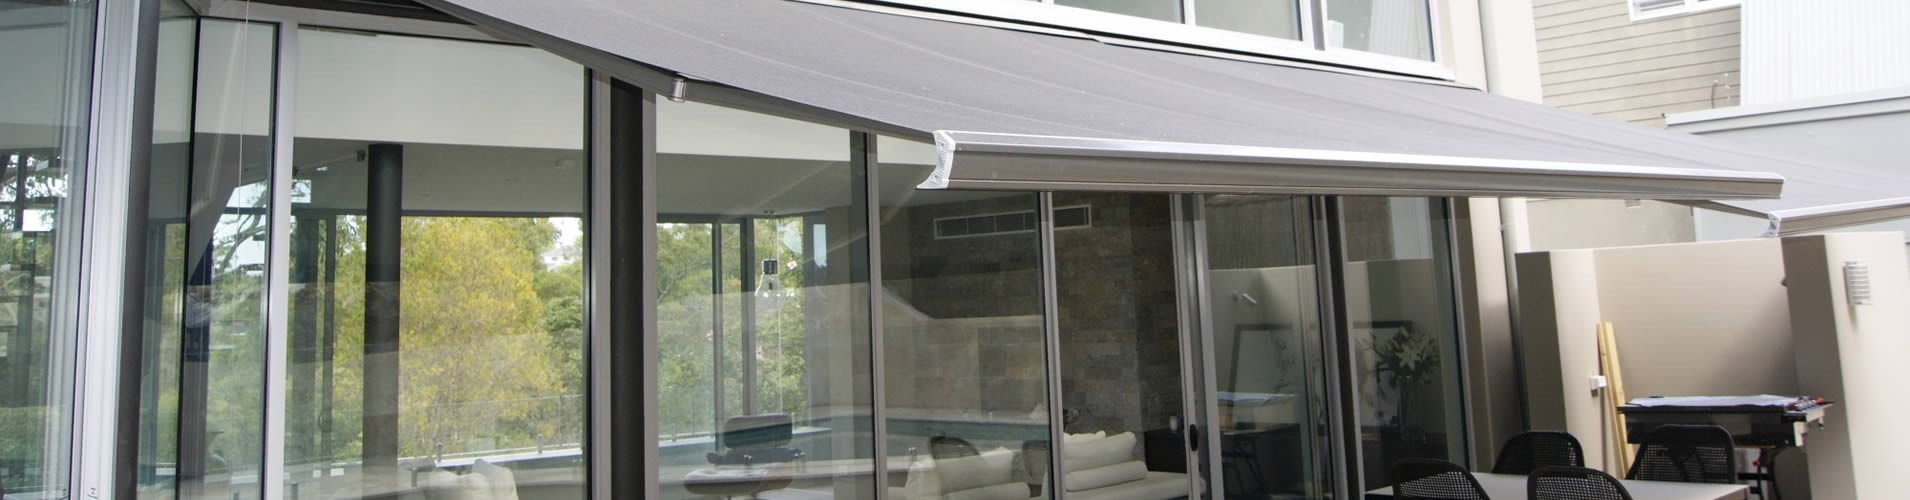 Premier Awnings Florida outdoor shade products